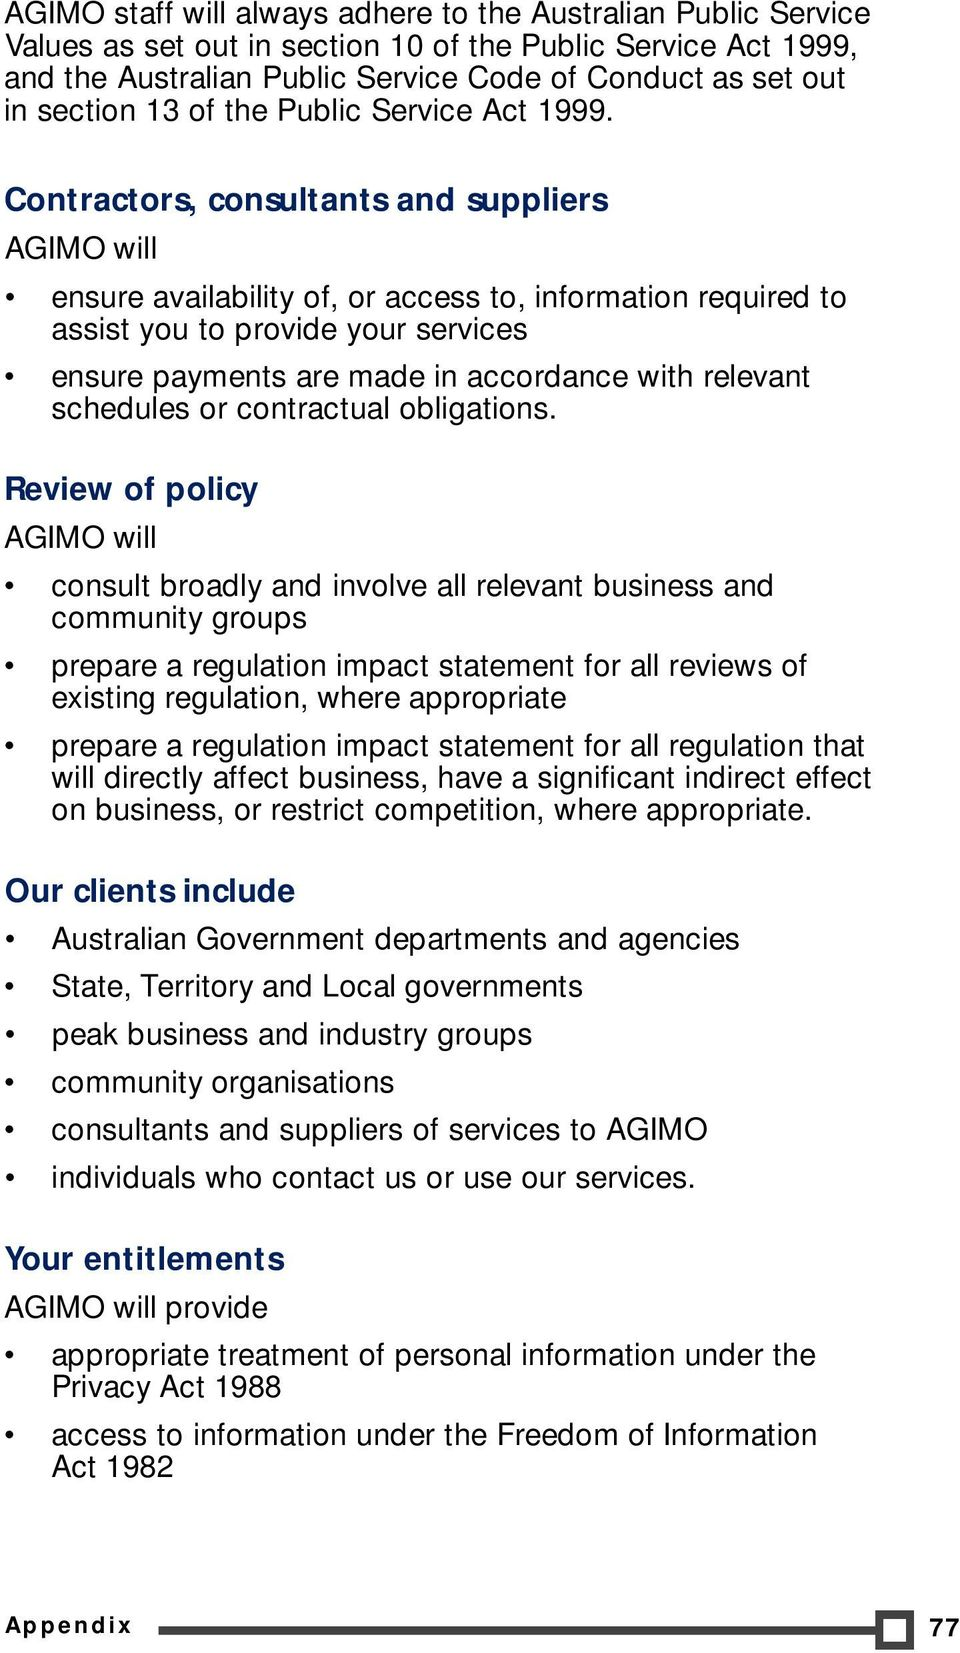 Contractors, consultants and suppliers AGIMO will ensure availability of, or access to, information required to assist you to provide your services ensure payments are made in accordance with